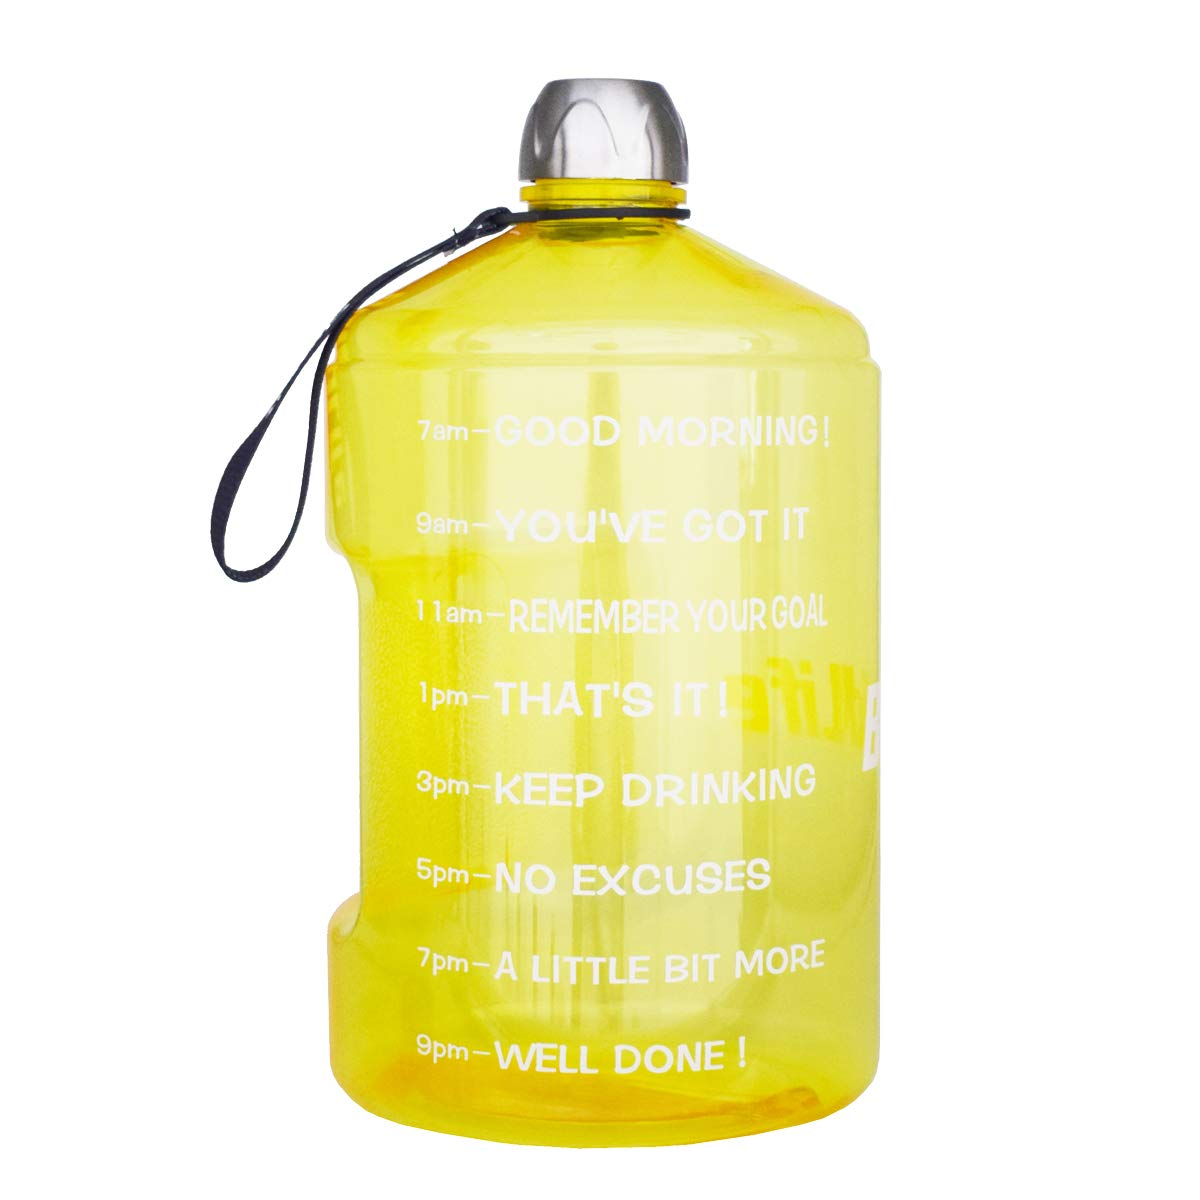 BuildLife 1 Gallon Water Bottle Motivational Fitness Workout with Time Marker  Drink More Water Daily   Clear BPA-Free   Large 128 Ounce/43OZ of Water Throughout The Day (1 Gallon-Yellow, 1 Gallon)